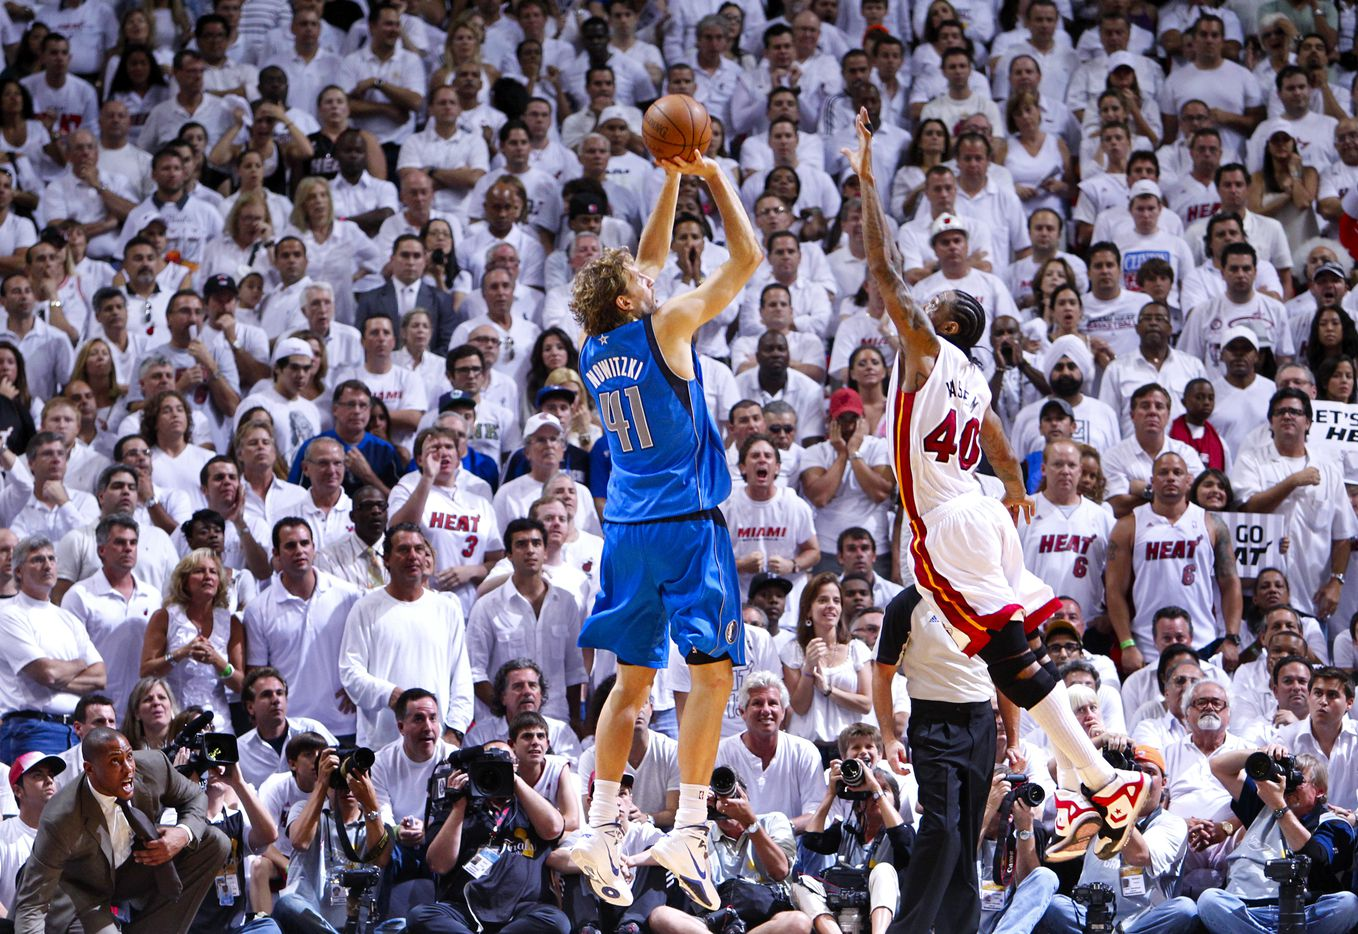 Dallas Mavericks power forward Dirk Nowitzki (41) puts up a jumper along the baseline late in the fourth quarter as Miami Heat power forward Udonis Haslem (40) tries to get a hand in his face in game six of the NBA Finals at American Airlines Arena Sunday, June 12, 2011 in Miami   (Tom Fox/The Dallas Morning News) 06162011xQUICK ORG XMIT: DMN1106130307261873